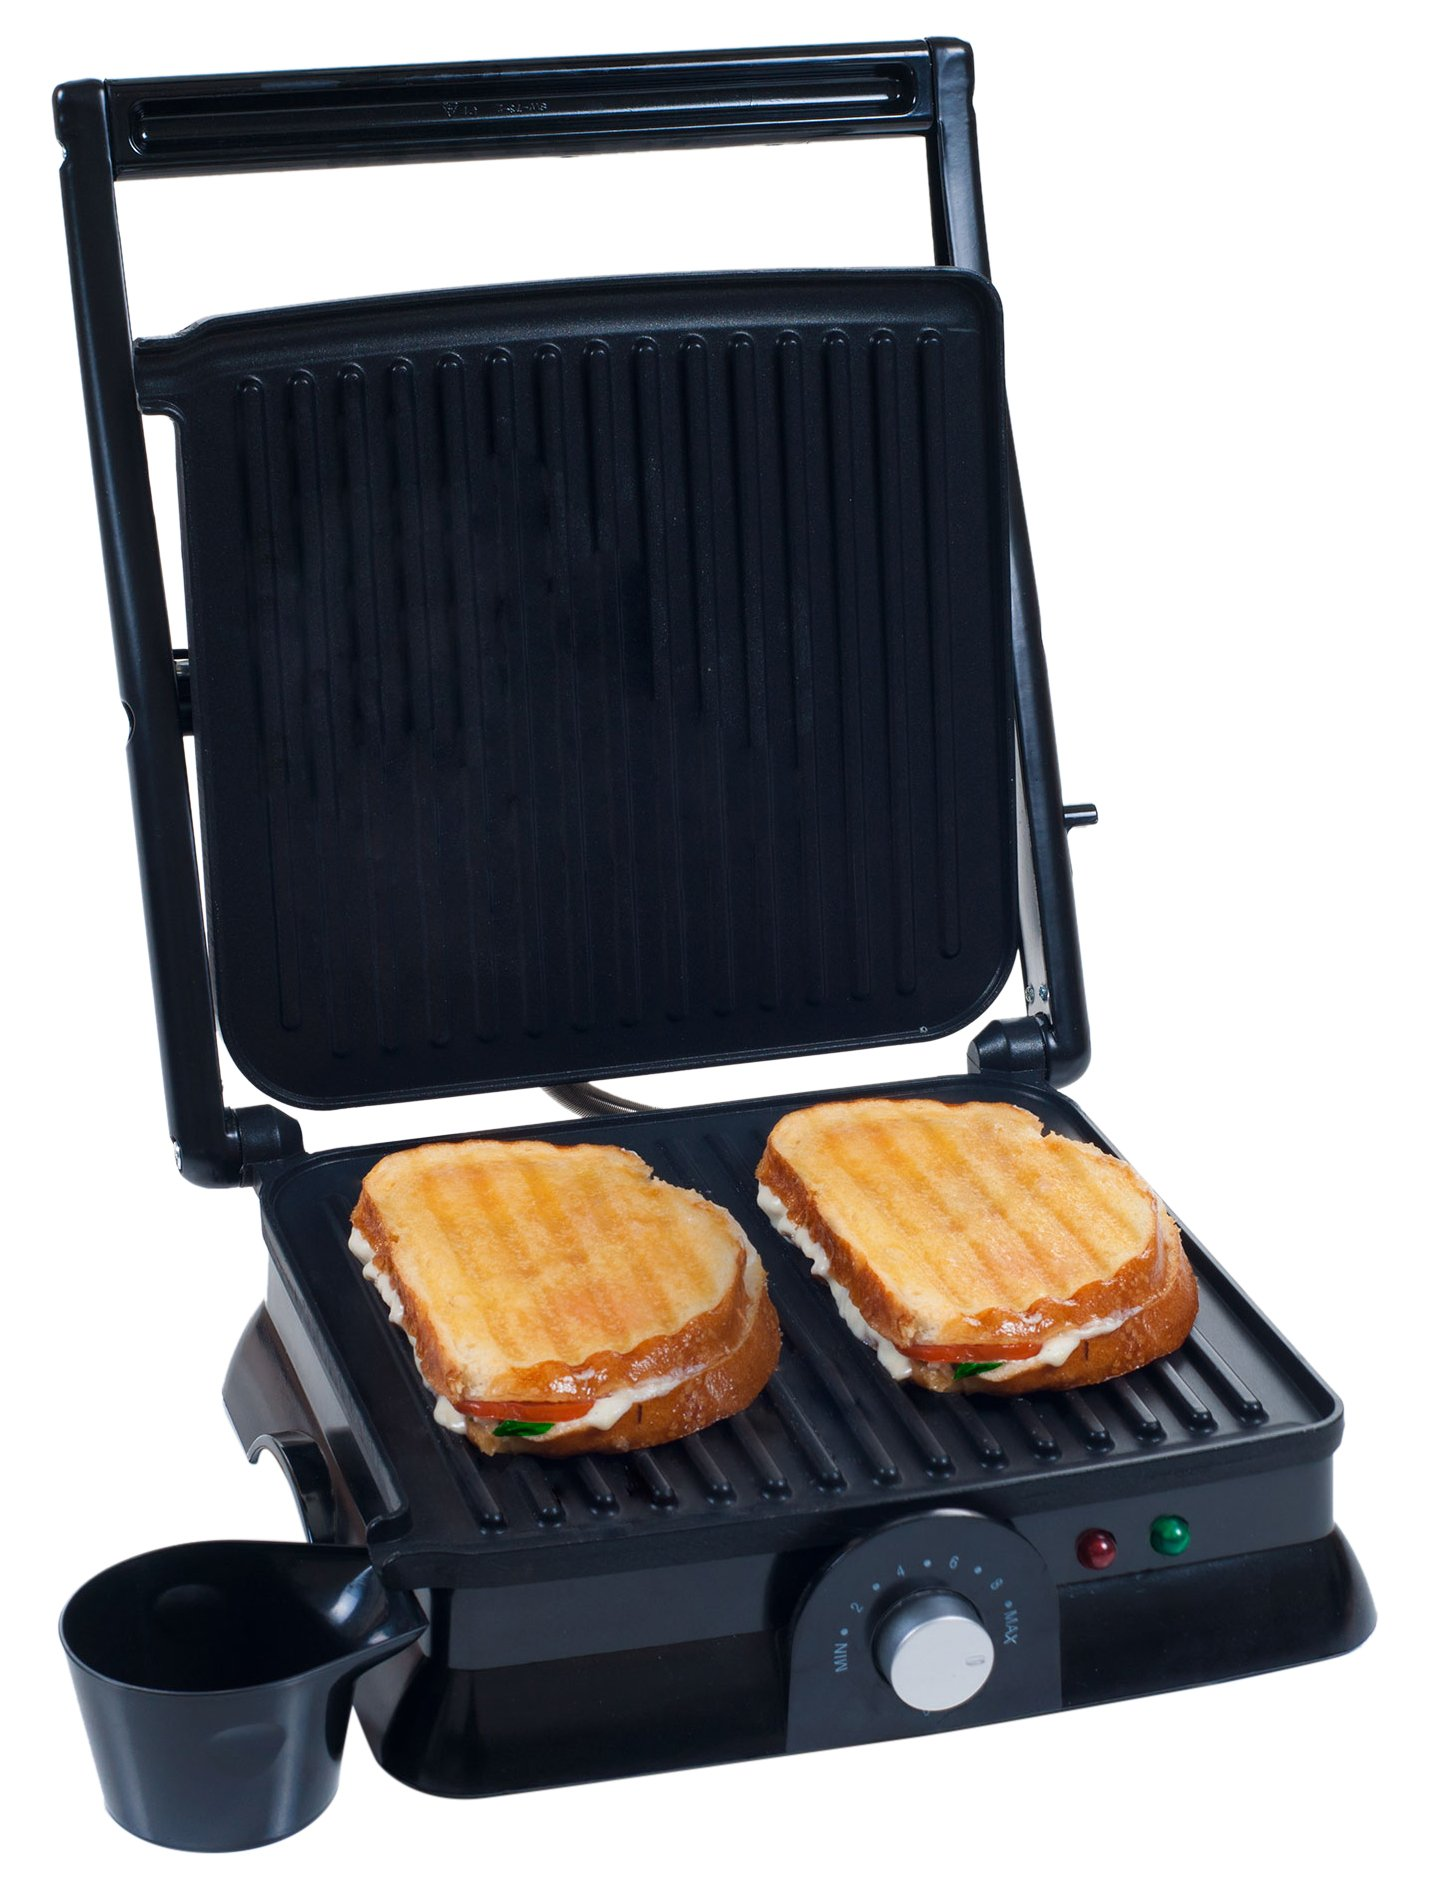 Chef Buddy 80-KIT1019 Panini Press Indoor Grill and Gourmet Sandwich Maker, Electric with Nonstick Plates by by Chef Buddy